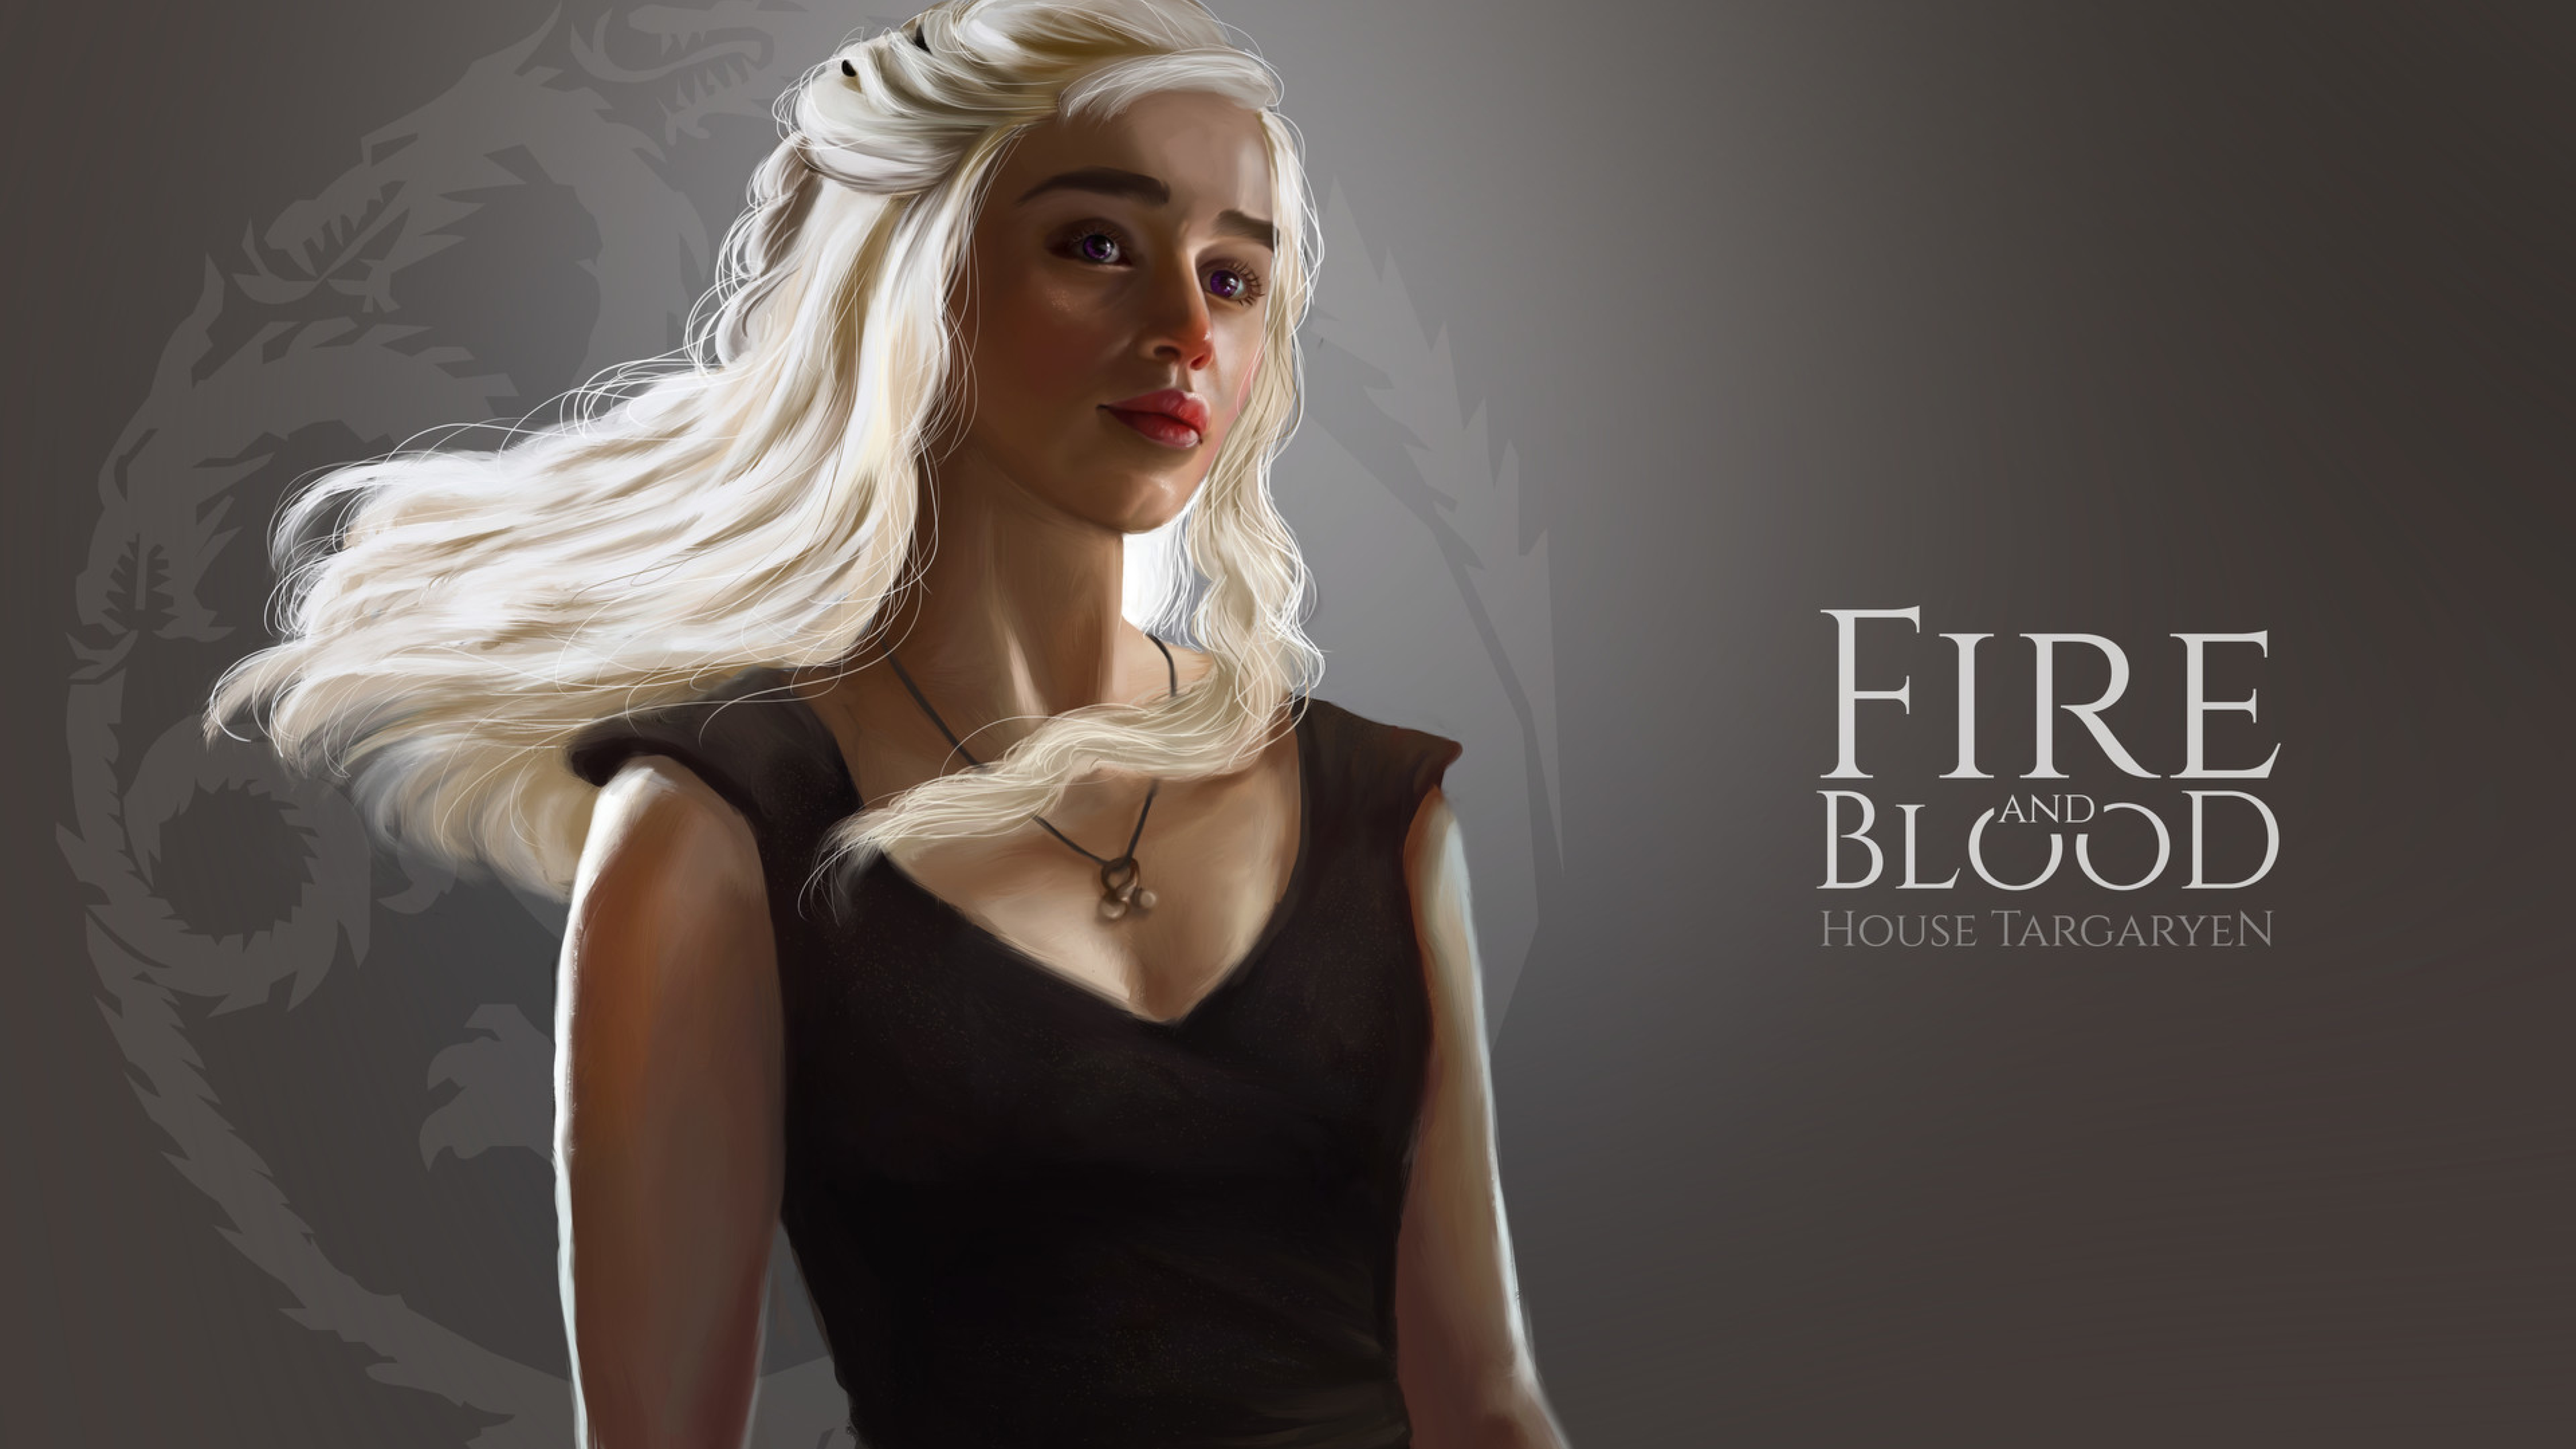 Game Of Thrones Dragon Girl Daenerys Targaryen Art Full HD Wallpaper